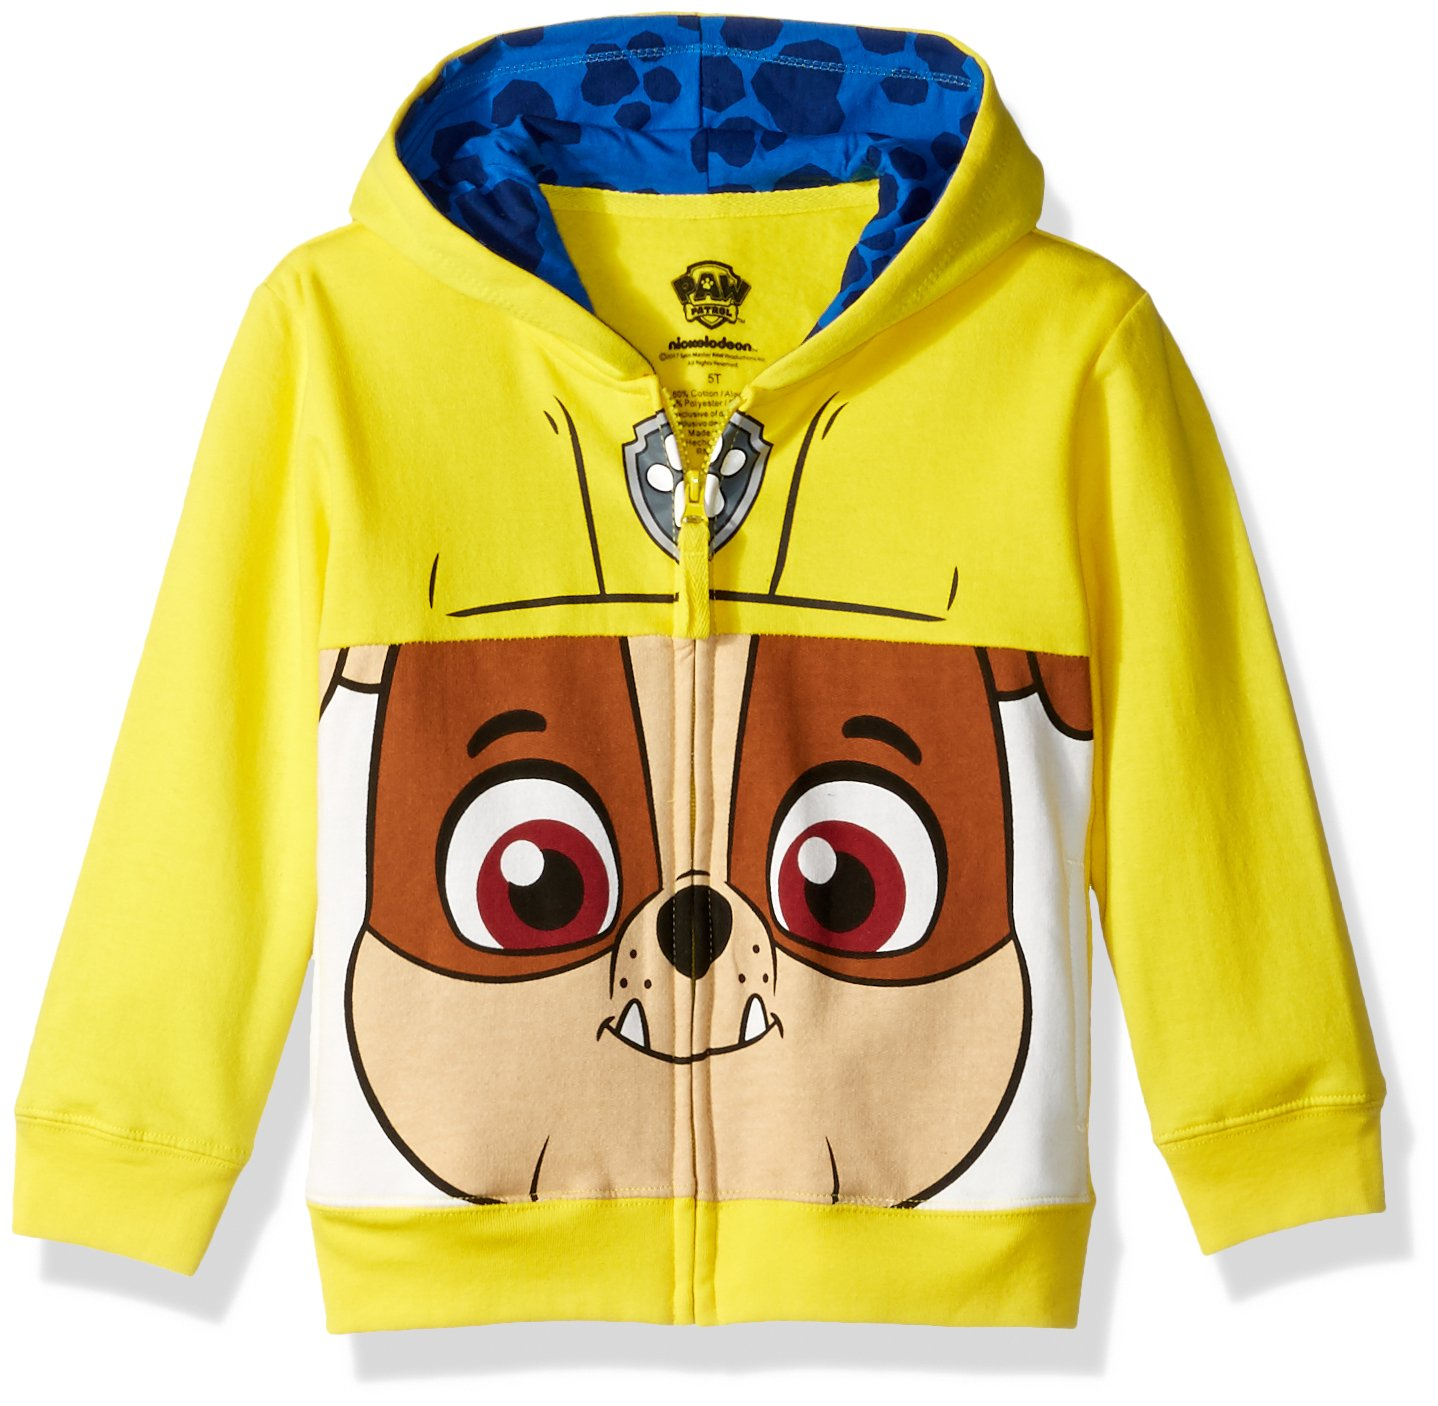 Nickelodeon boys Toddler Boys Paw Patrol Character Big Face Zip-up Hoodies ABSB220-5U09